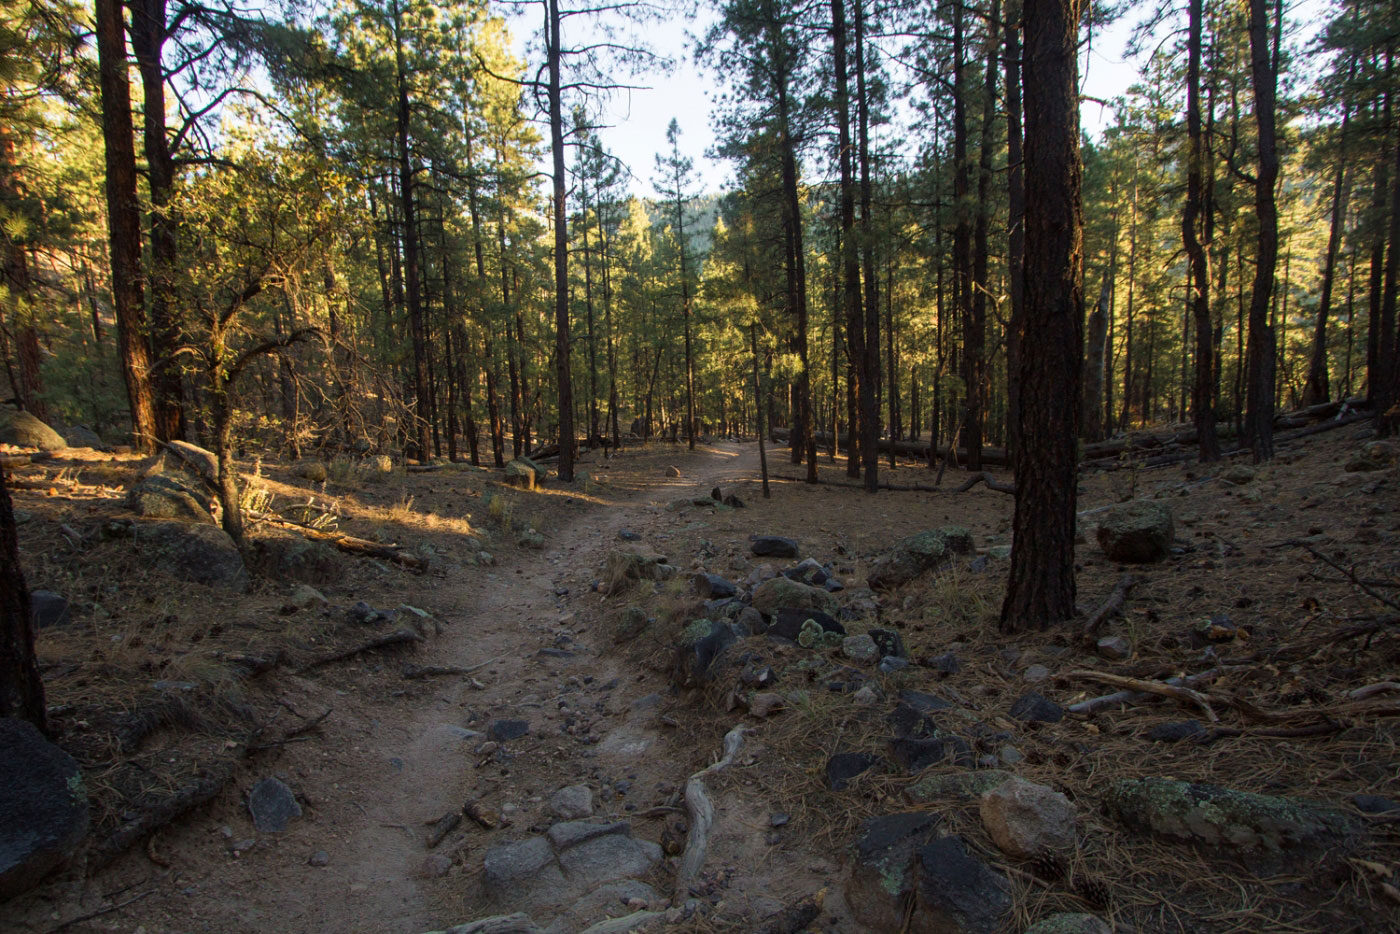 Hiking Mccauley Hot Springs In Santa Fe National Forest